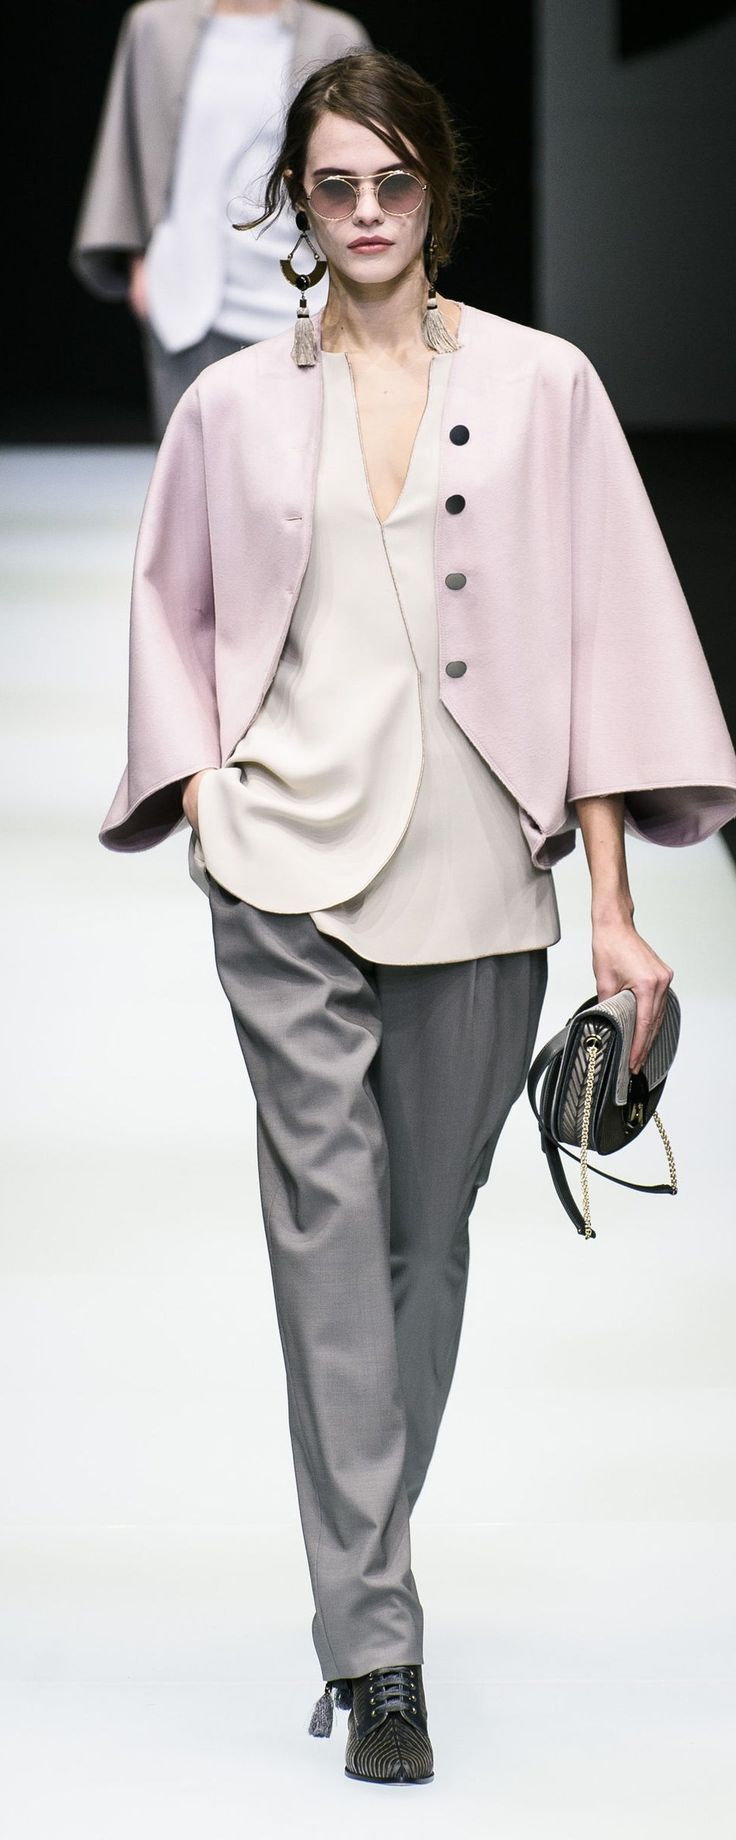 Giorgio Armani Fall-winter 2018-2019 - Ready-to-Wear - http://www.orientpalms.com/Giorgio-Armani-7151 - ©ImaxTree